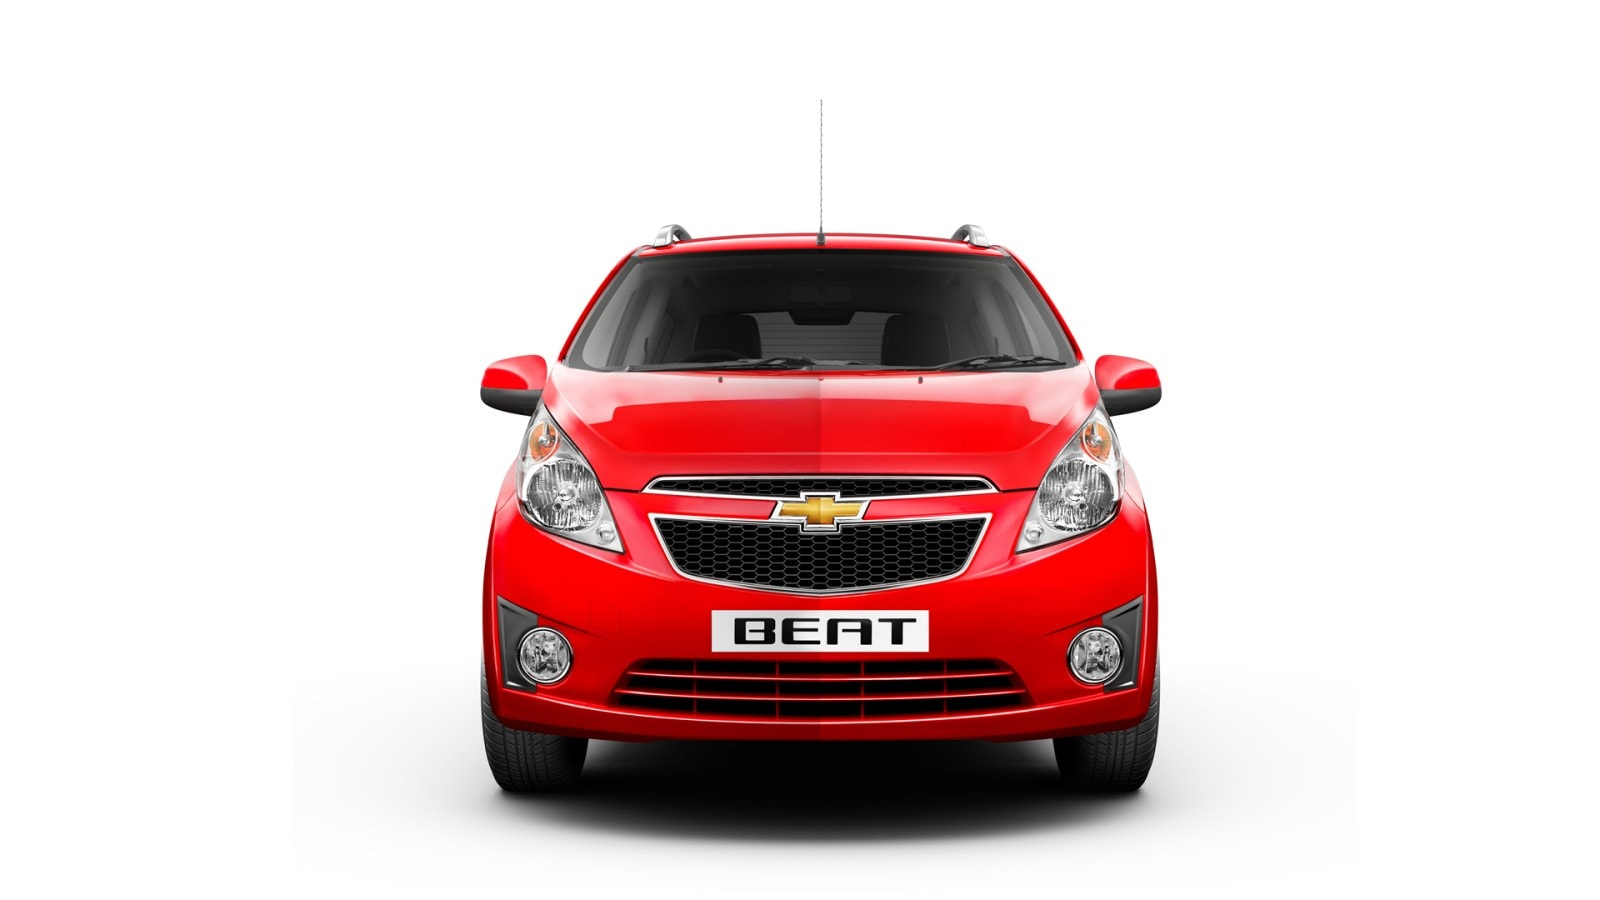 Chevrolet Beat India, Price, Review, Images - Chevrolet Cars